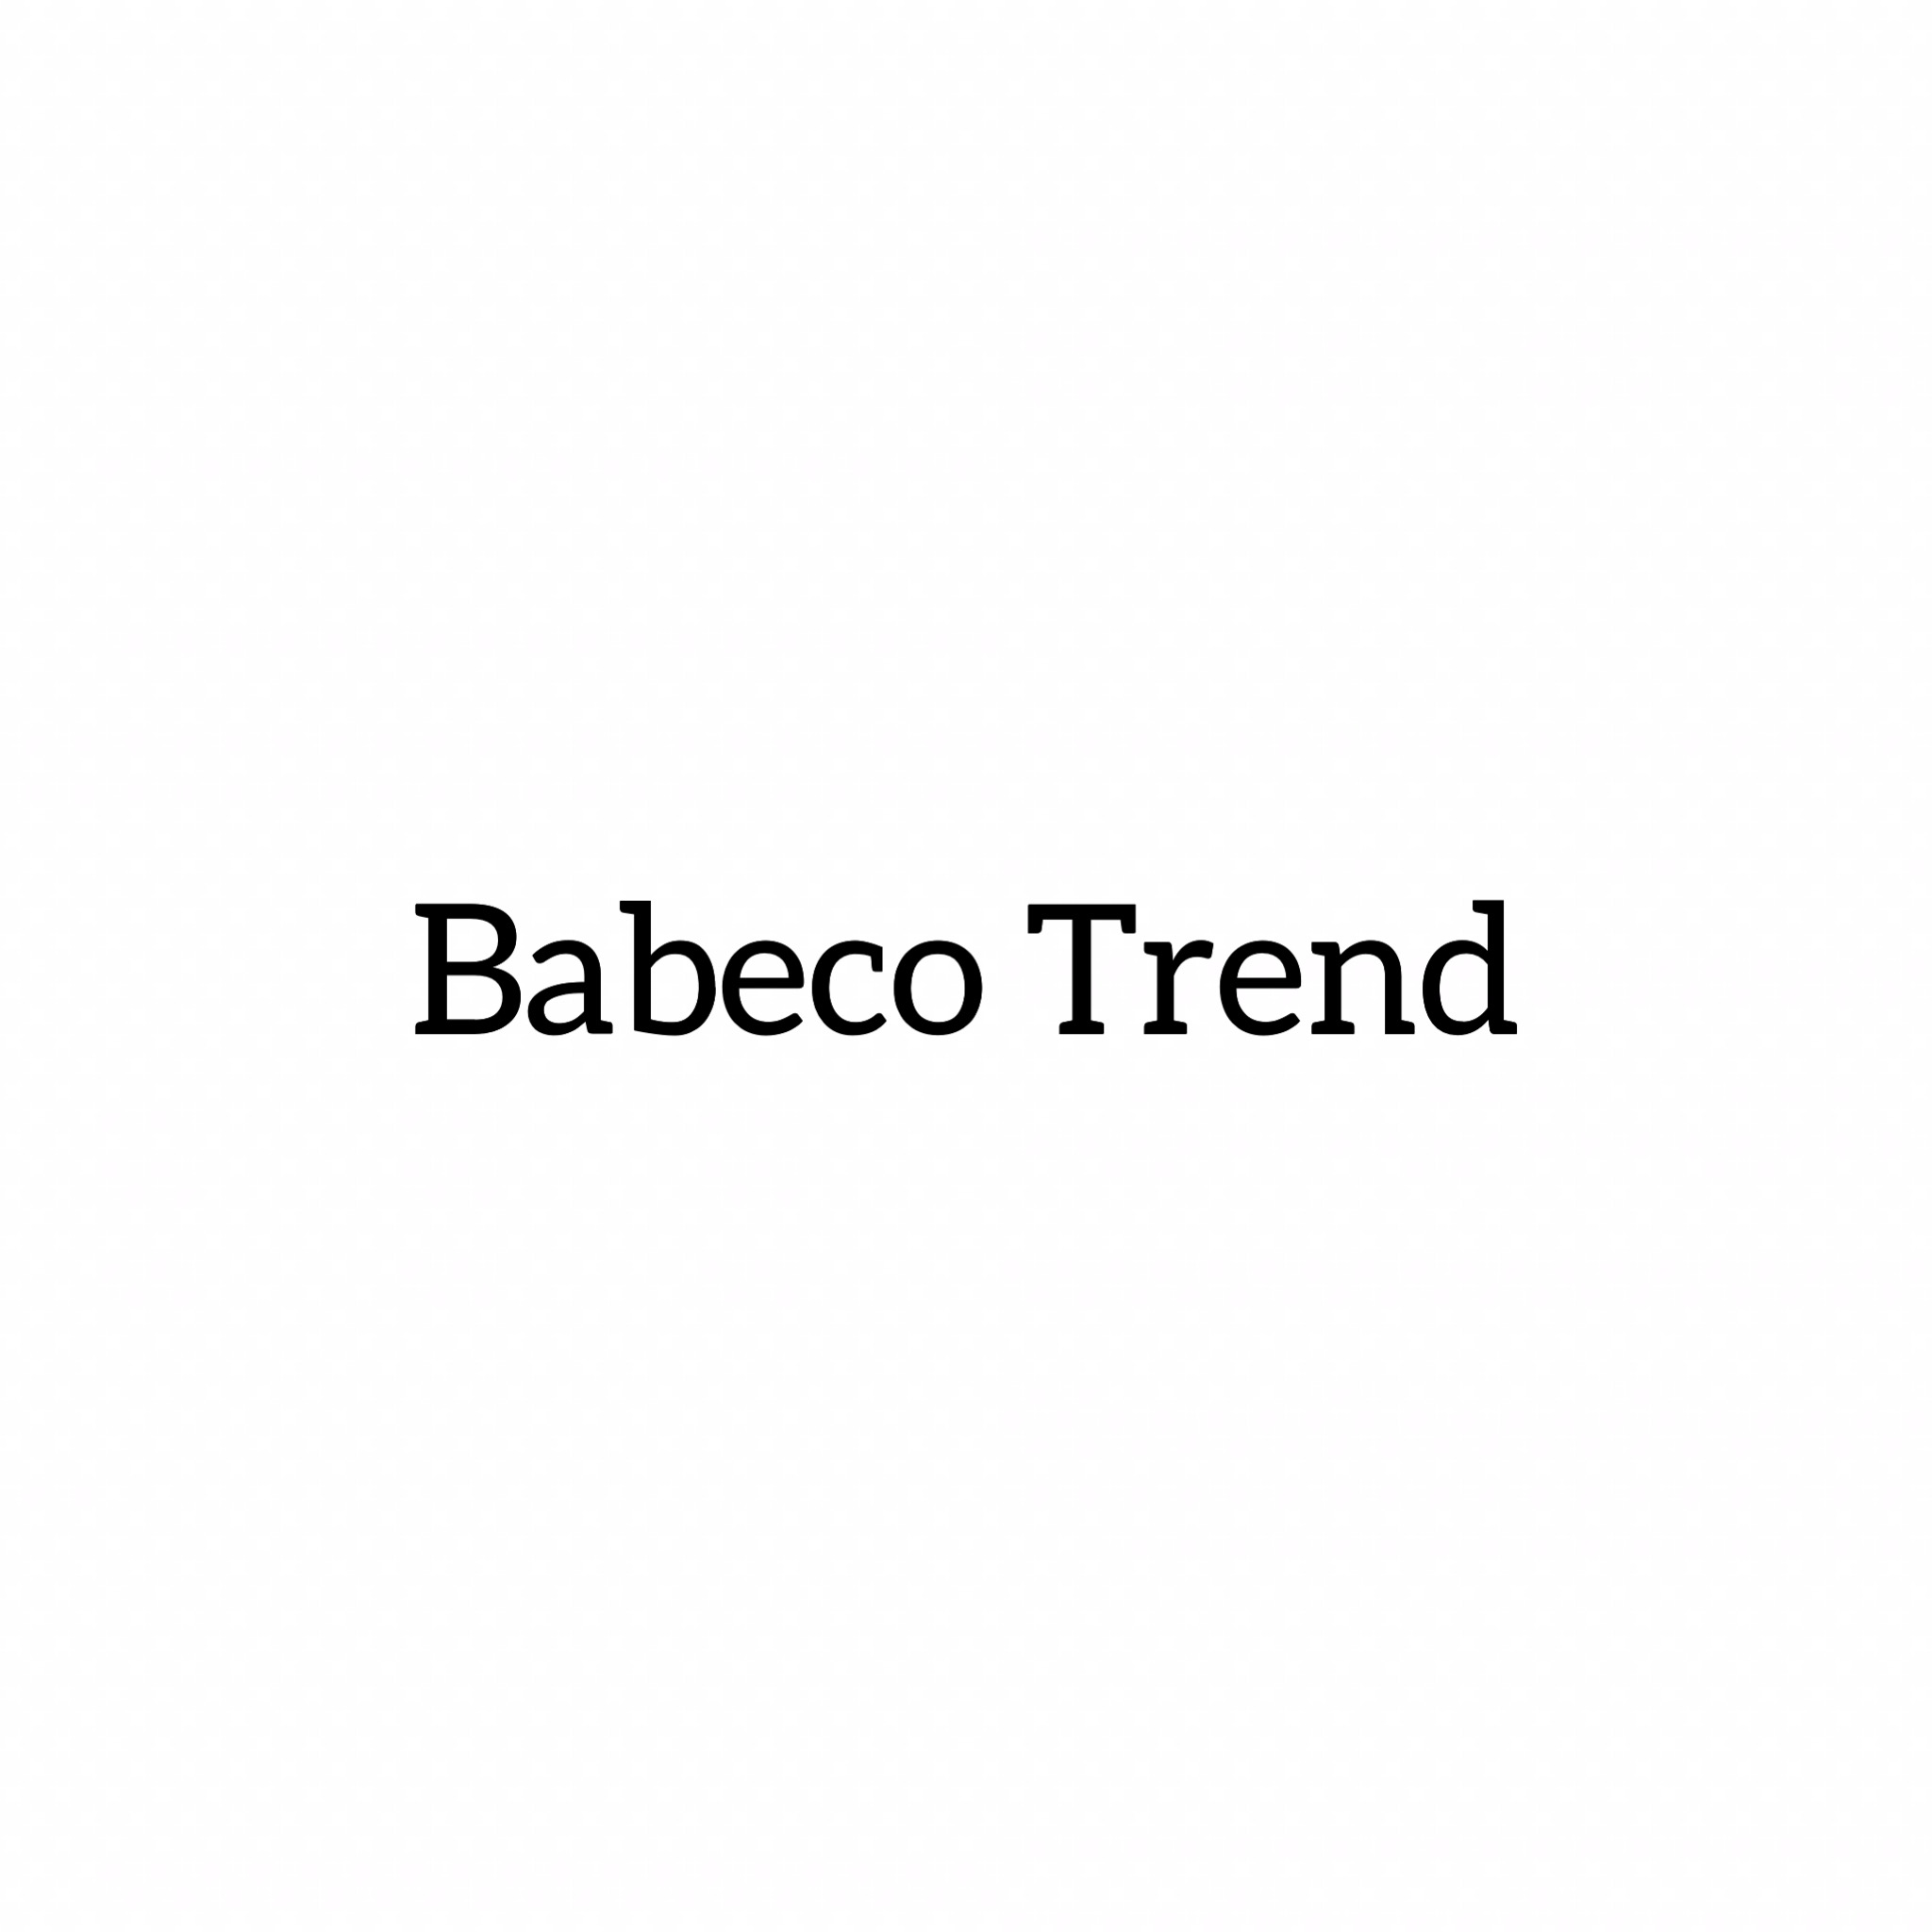 Babeco Trend